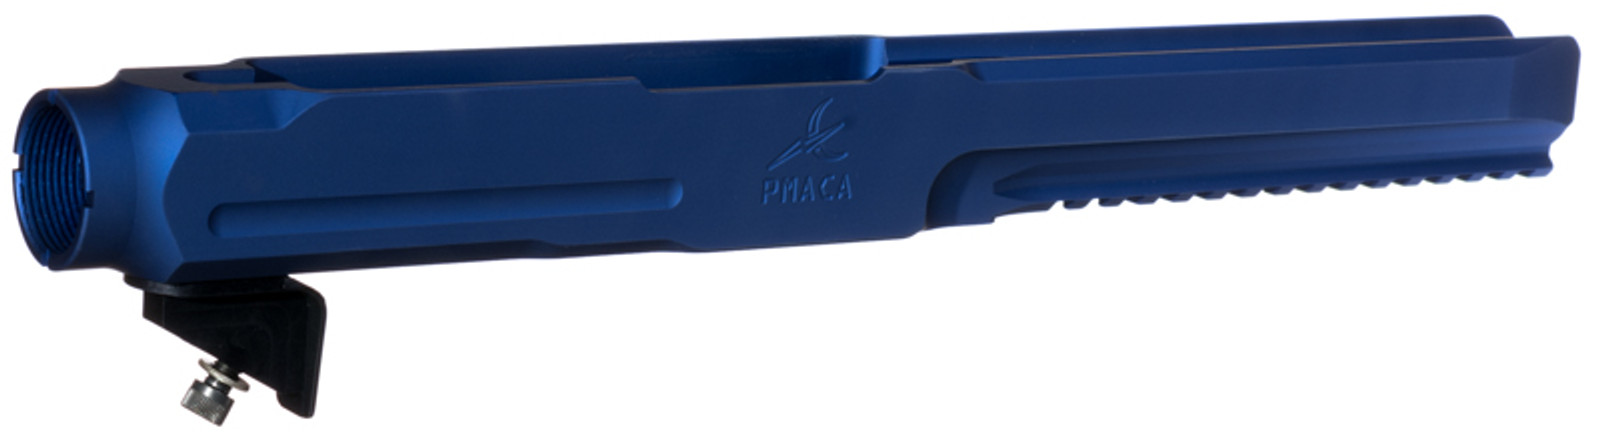 PMACA Blue Anodize Long Nose Chassis - Upgrade your Ruger 10/22